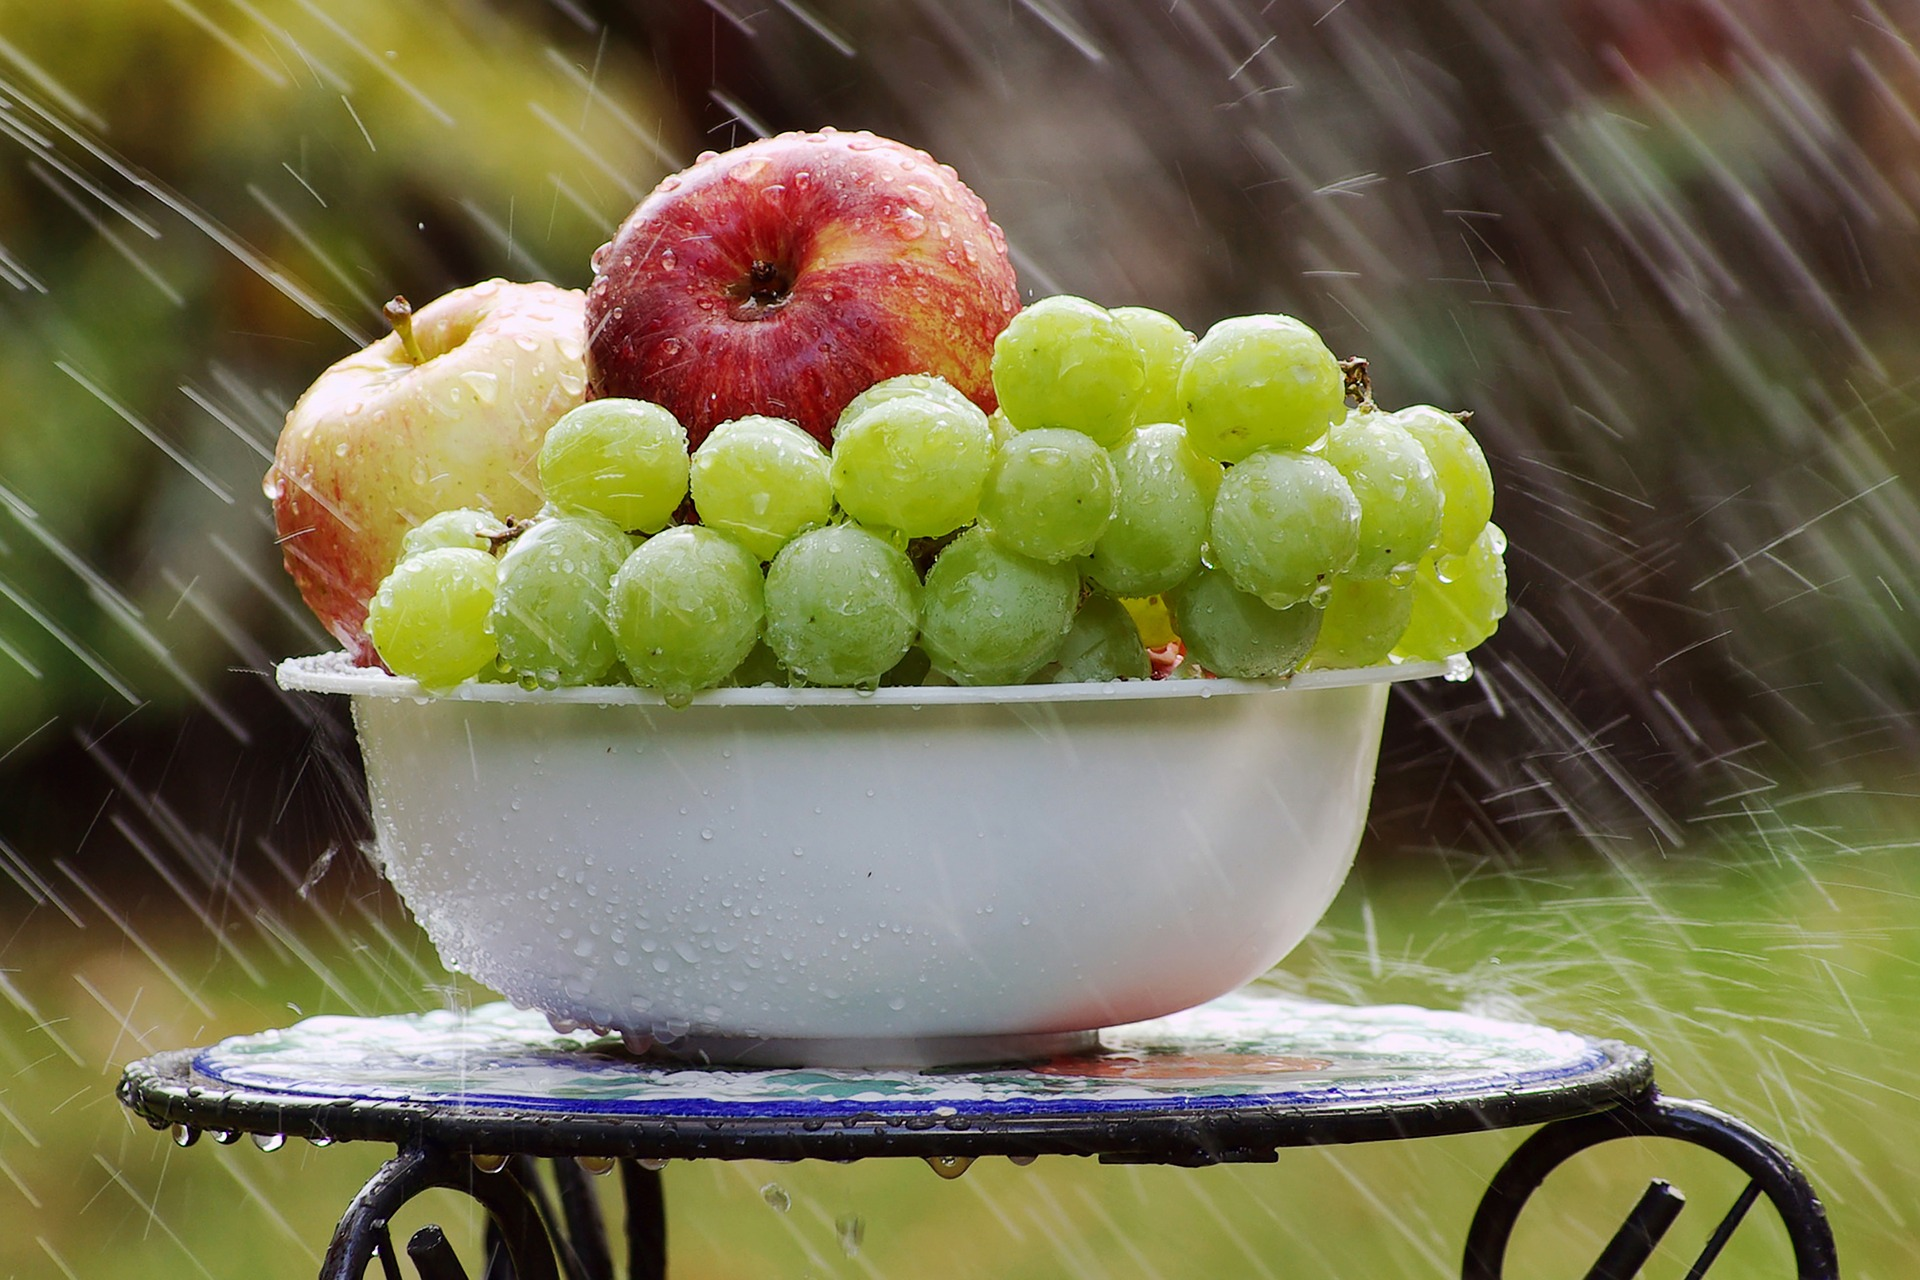 bowl-of-fruit-in-rain-4125348_1920